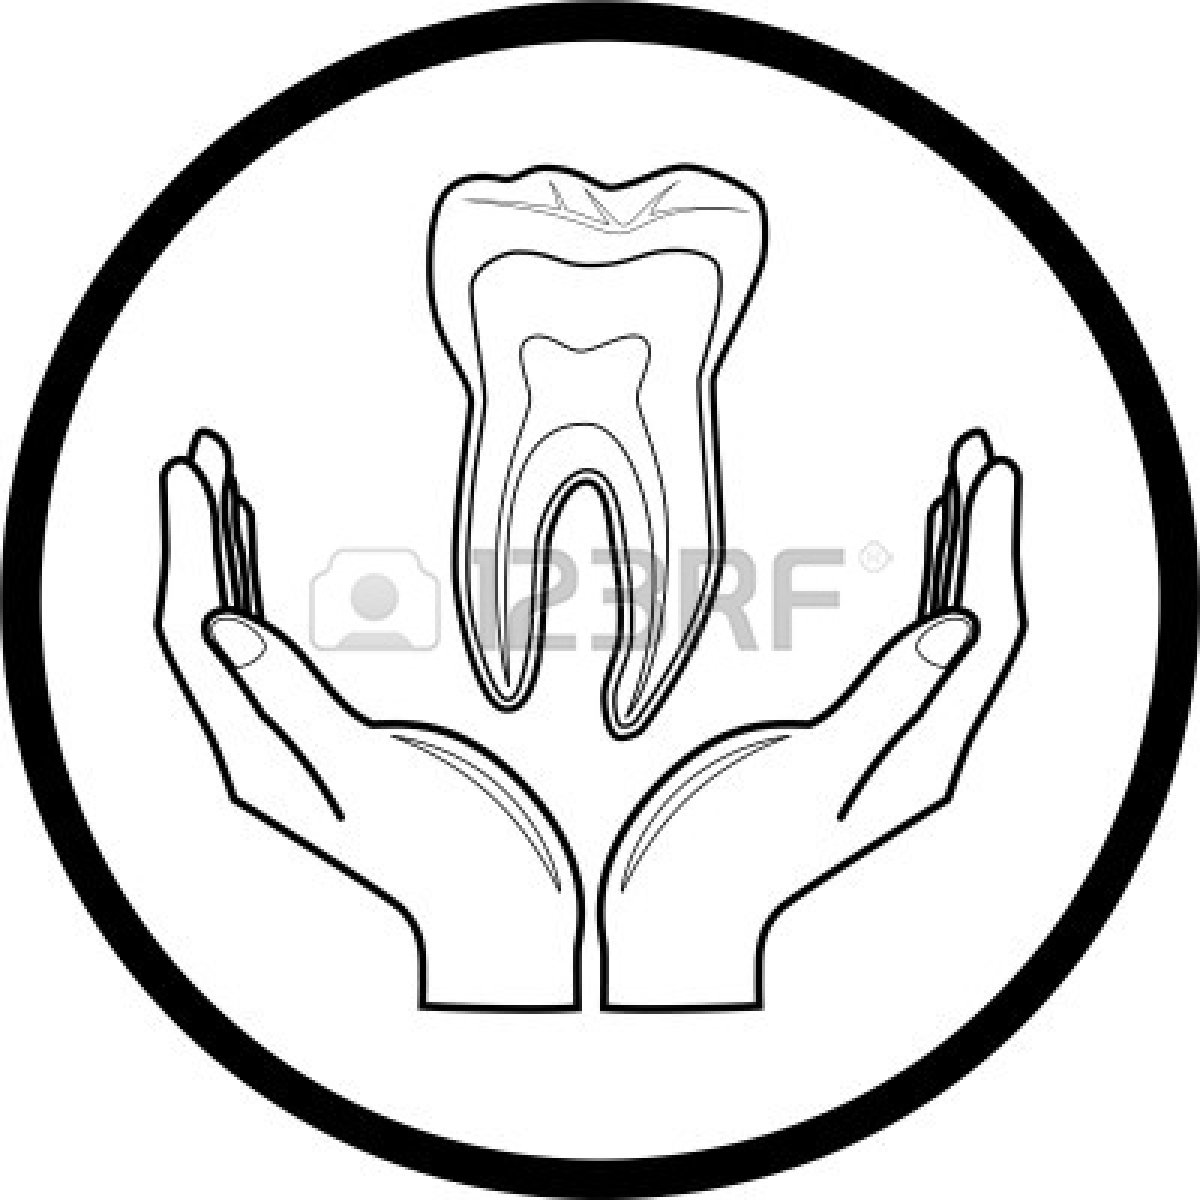 teeth%20clipart%20black%20and%20white